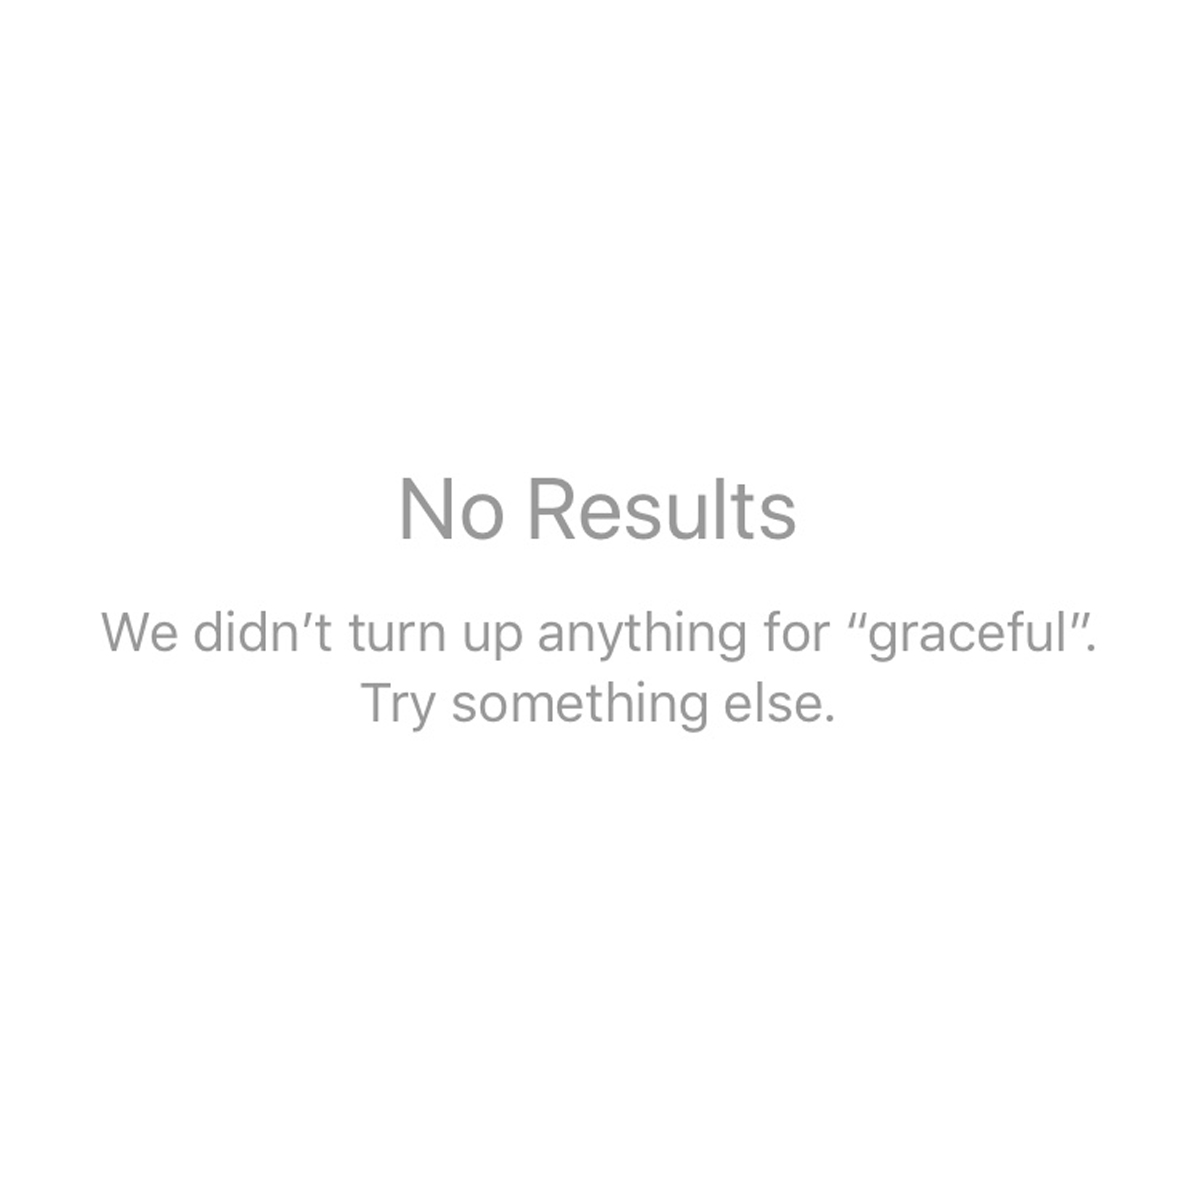 10.17.17: Graceful (No Results)